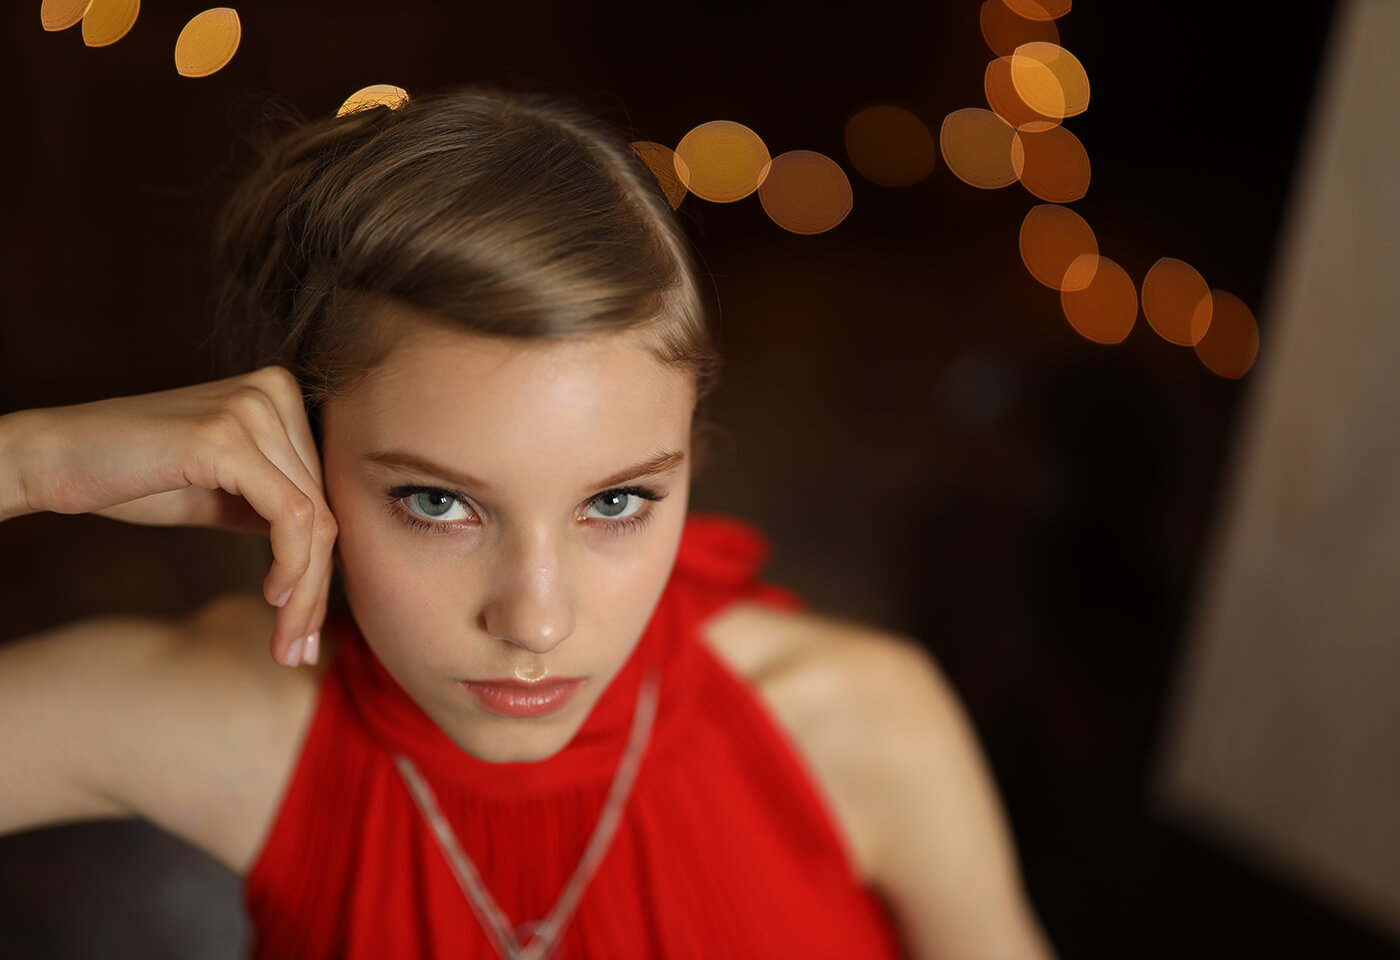 Photograph of model in red dress taken using RF 50mm f/1.2 L USM